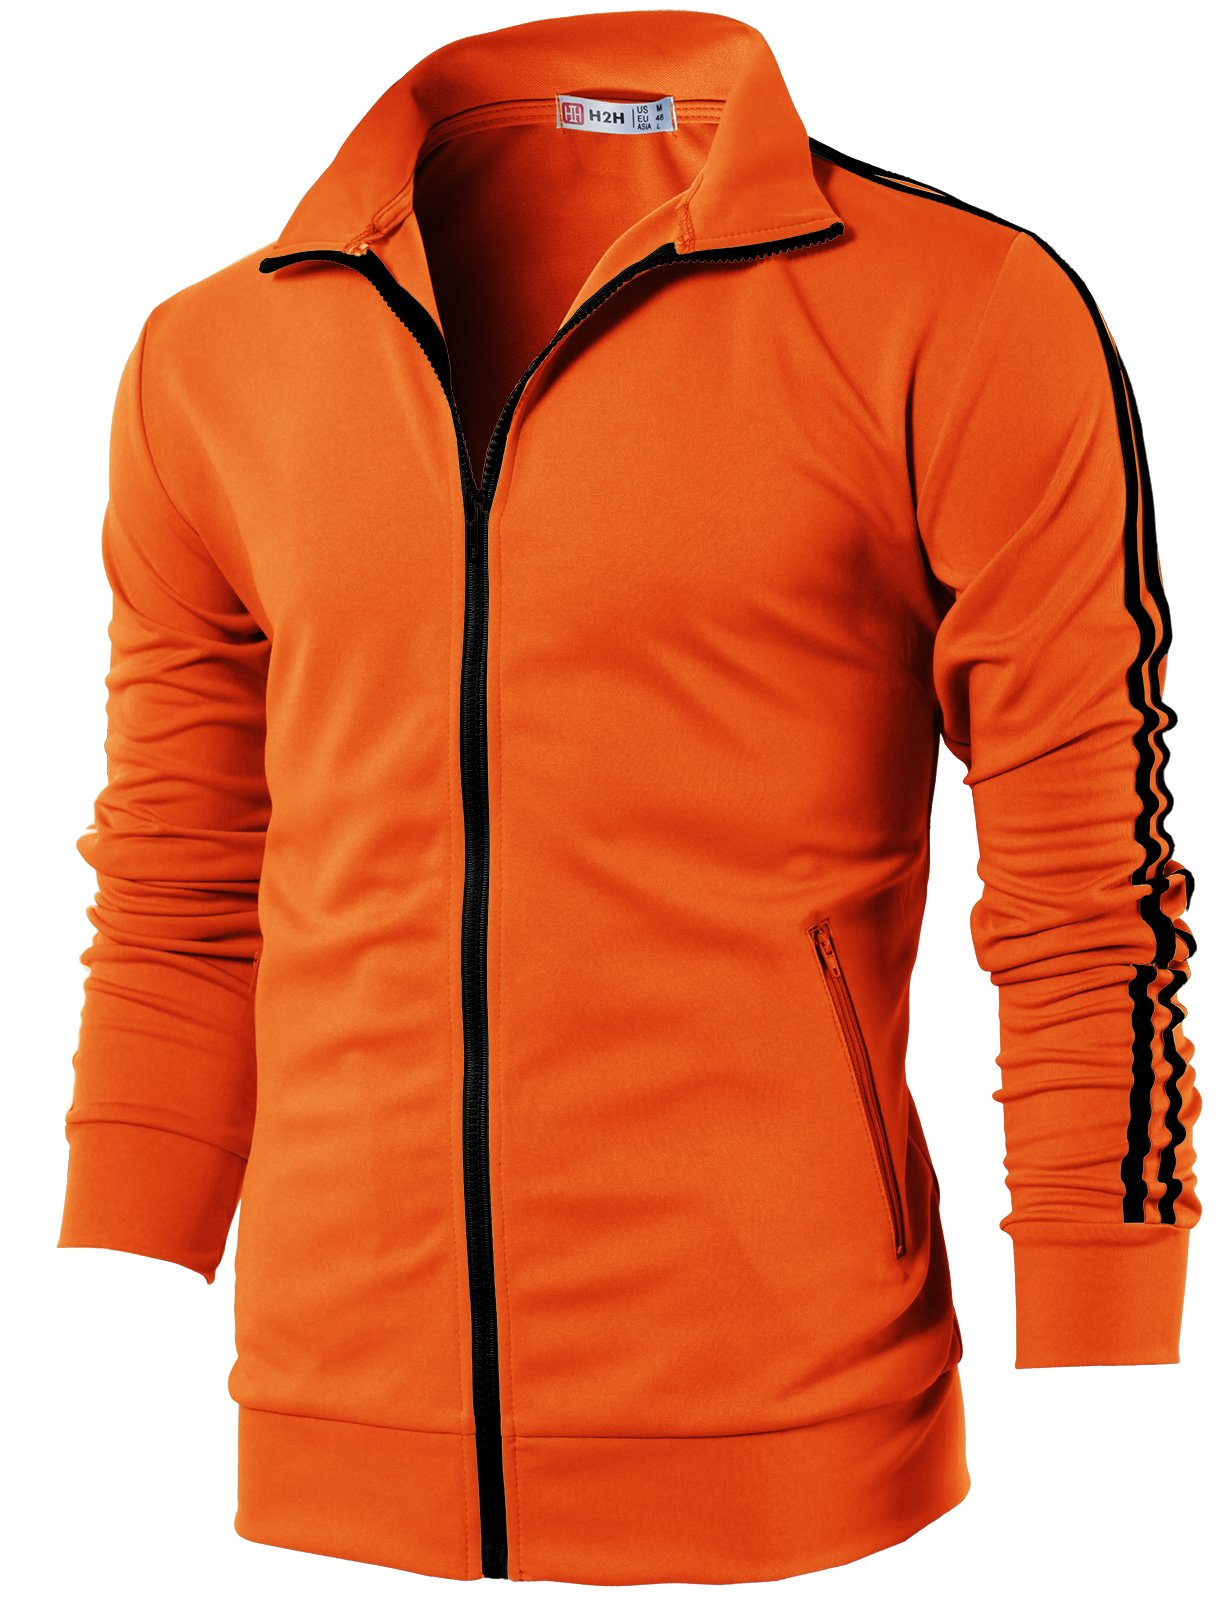 H2H Mens Workout Slim Fit Lightweight Line Training Full Zip-up Jacket Orange US L/Asia XL (CMOJA0103)